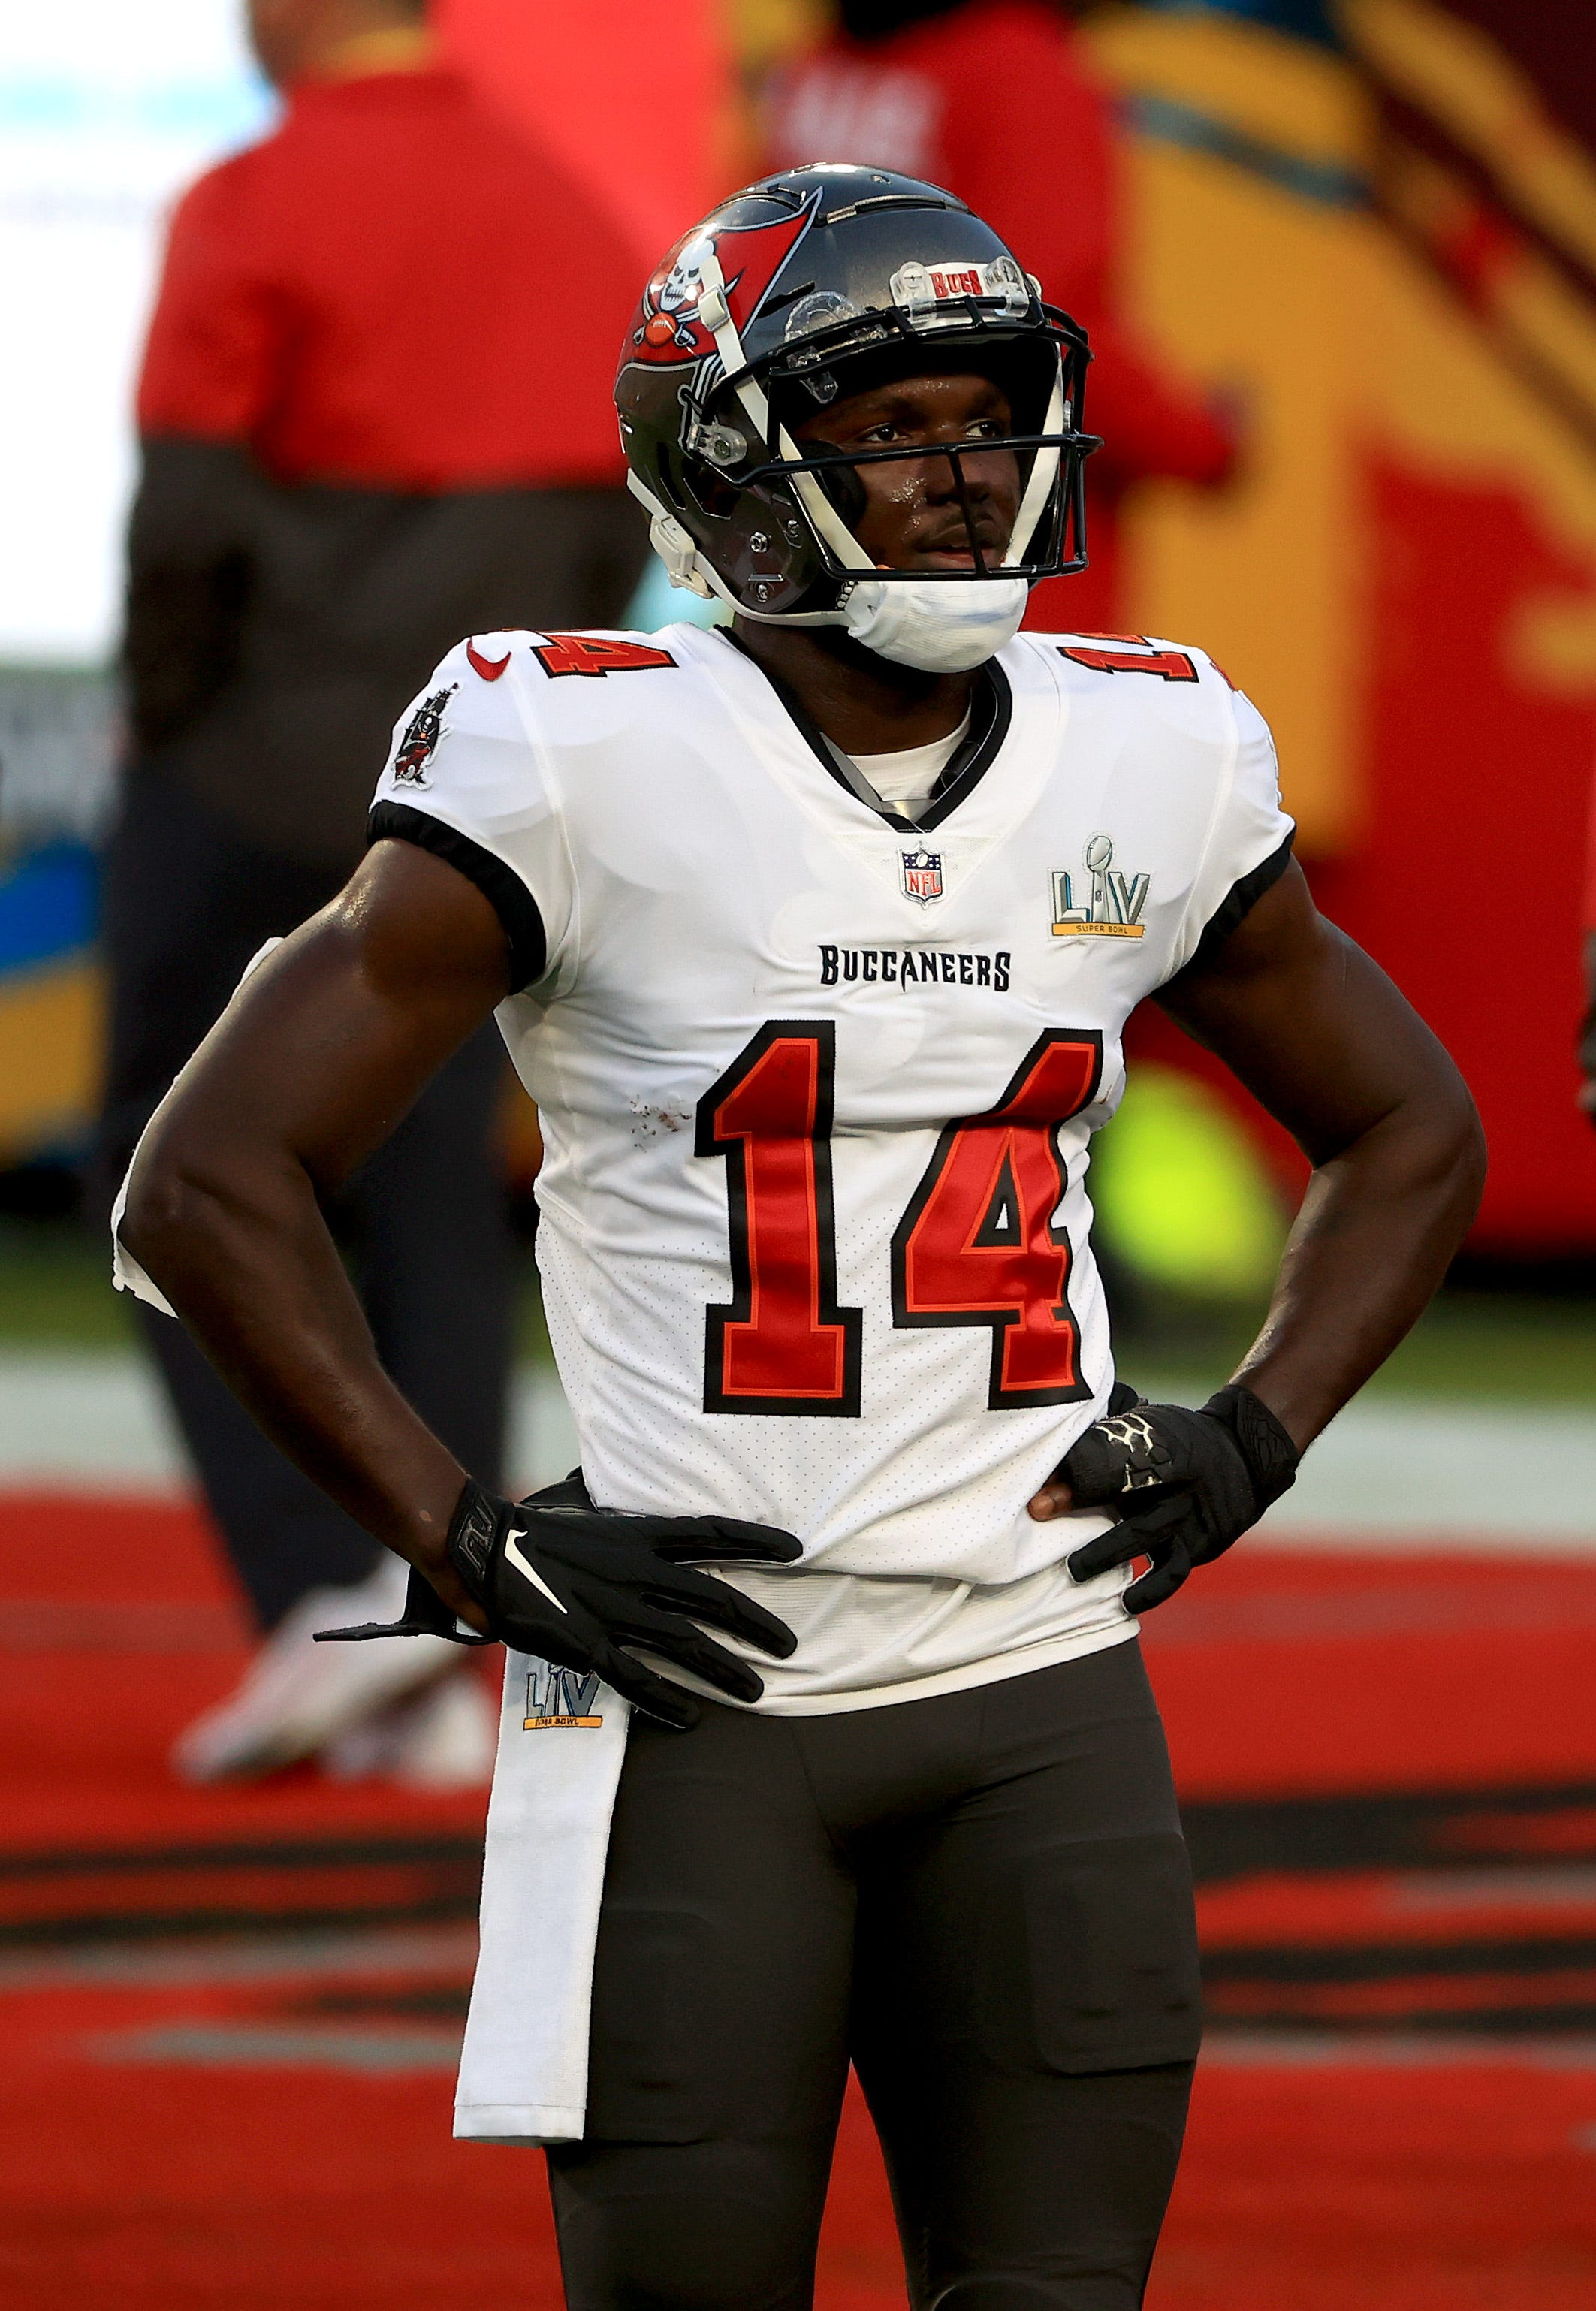 Chris Godwin (14) of the Tampa Bay Buccaneers looks on before playing against the Kansas City Chiefs in Super Bowl 55 at Raymond James Stadium on Sunday, Feb. 7, 2021, in Tampa, Fla.